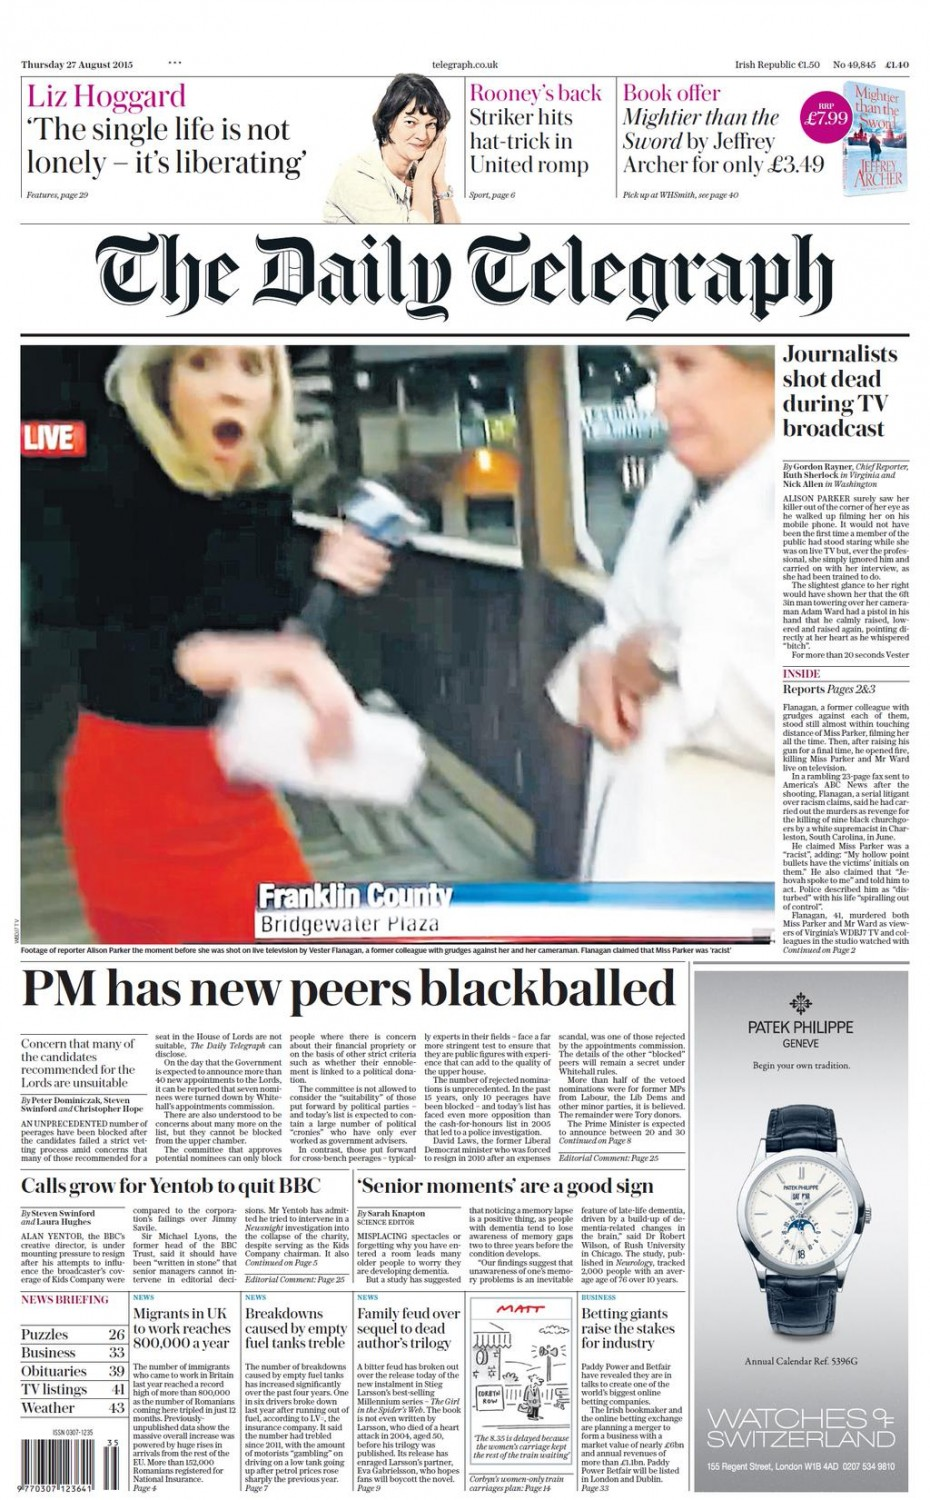 06 - The Daily Telegraph -- Iffy